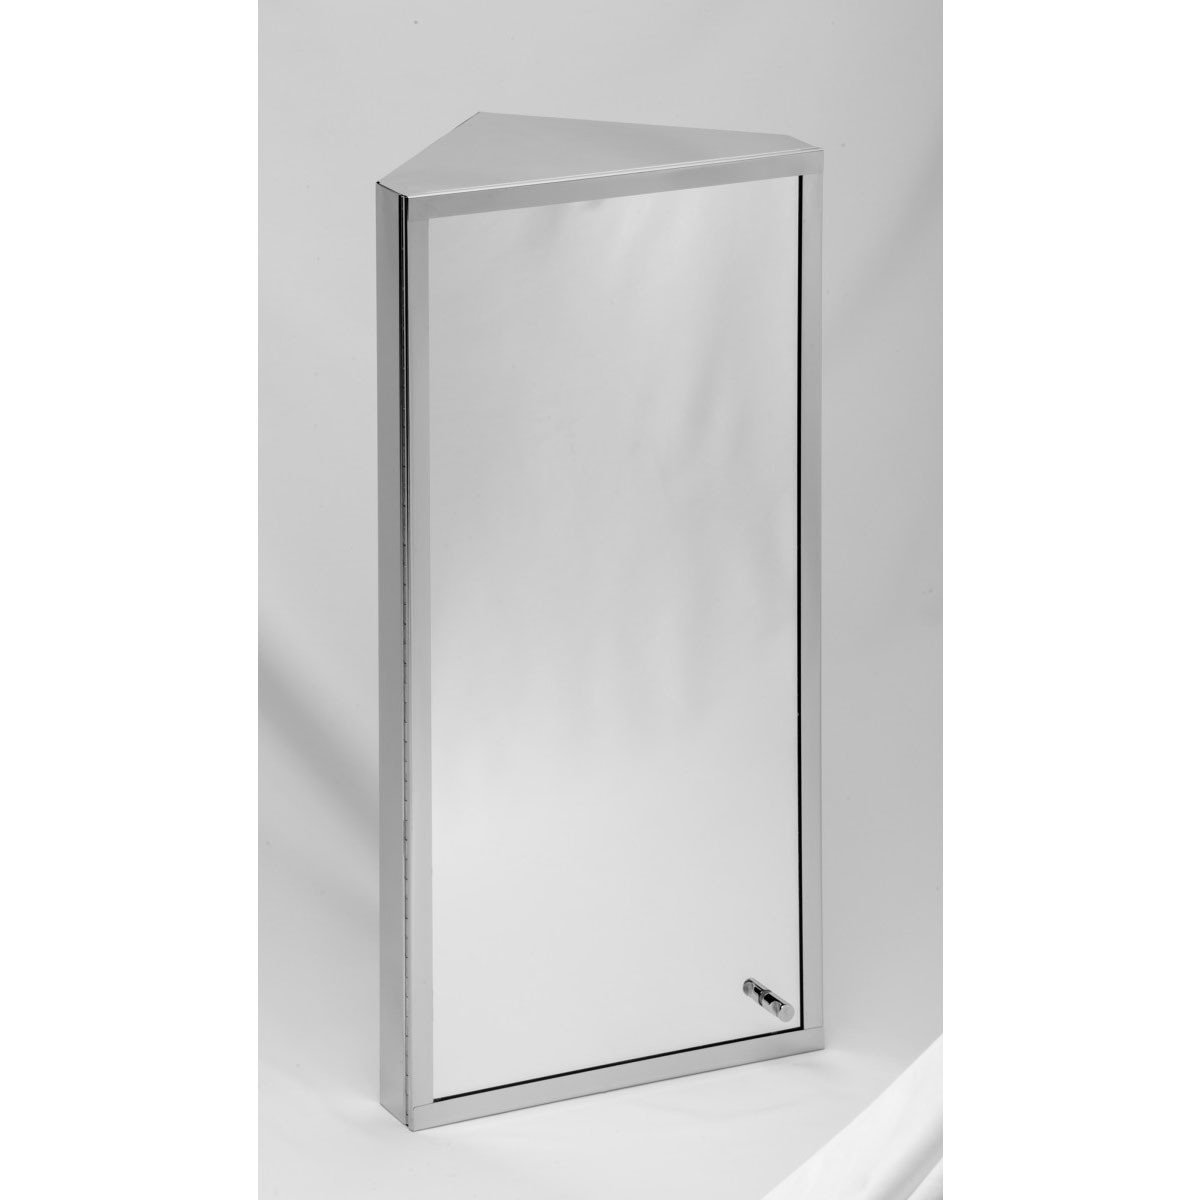 corner medicine cabinet polished stainless steel mirror door three shelves removable middle shelf